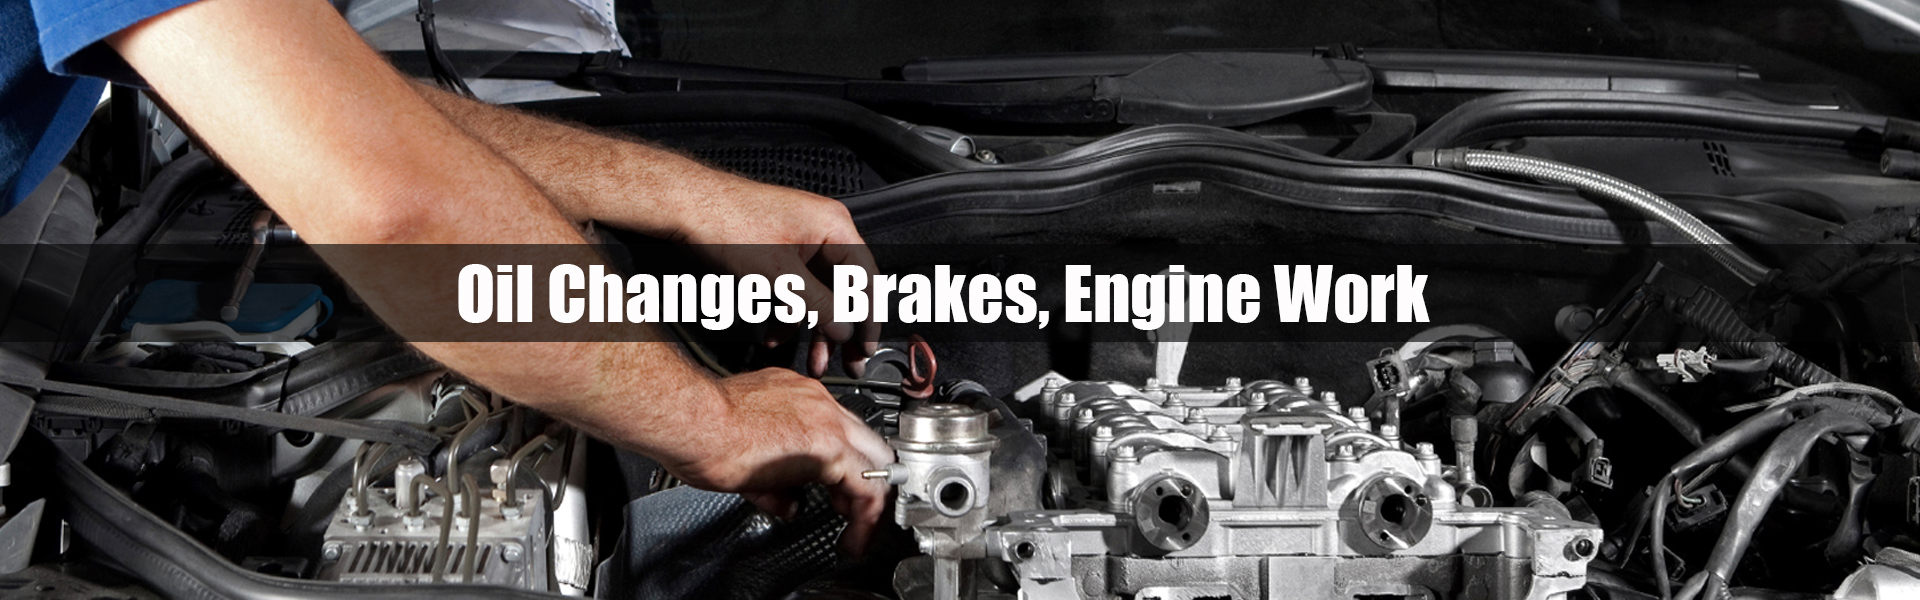 Super Service Auto Repair Plant City Fl Shop Mechanic Engine Brakes And Performance Parts In Come Visit We Are Proud To Specialize